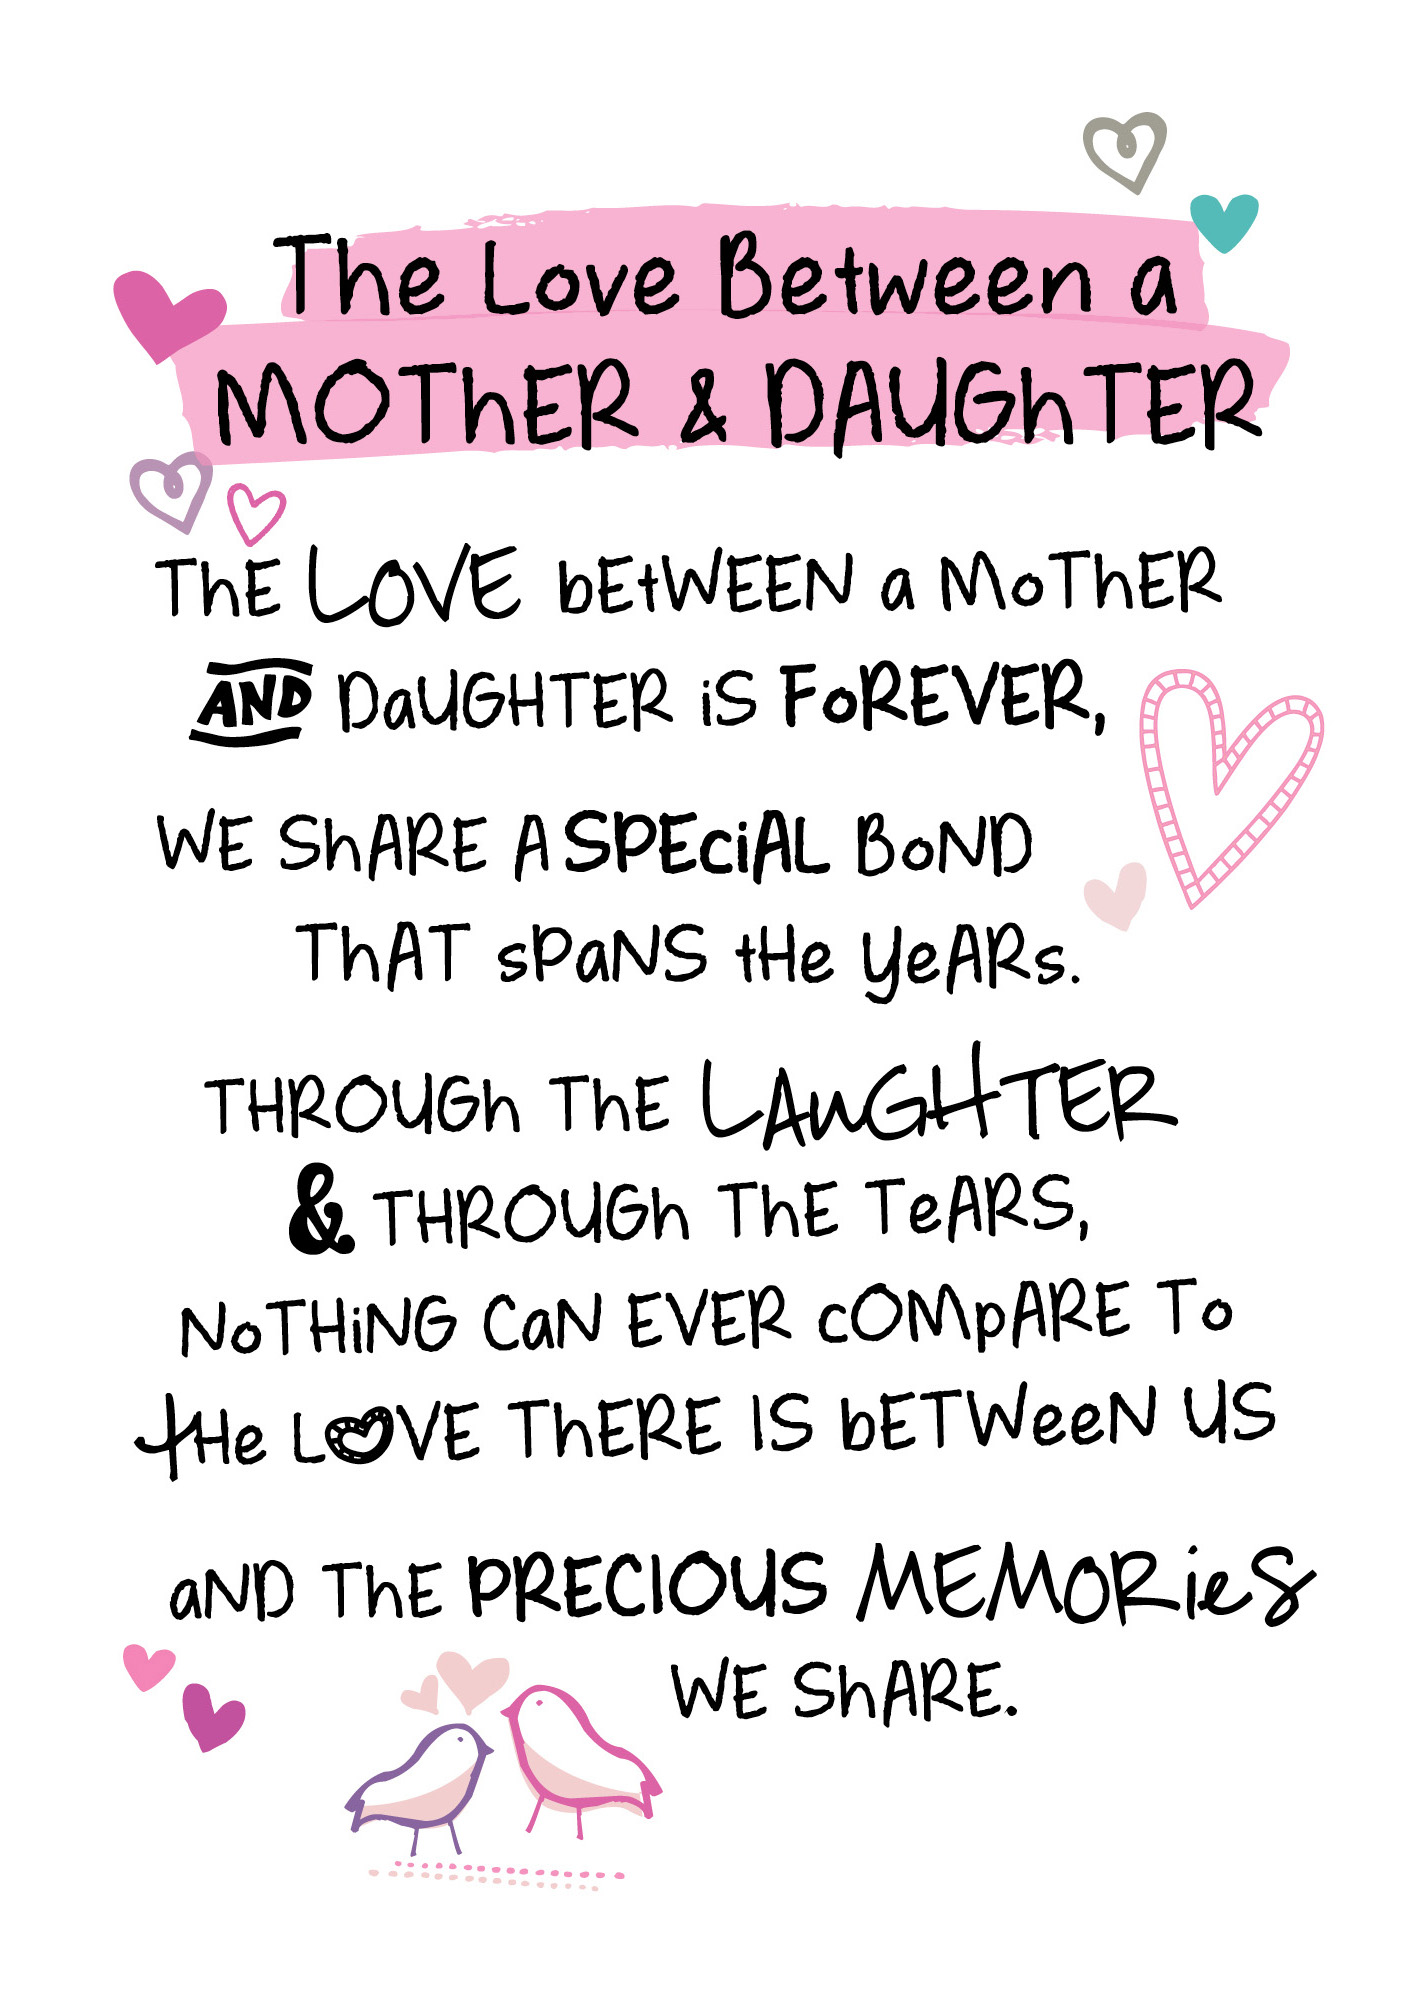 Mother Daughter Love Inspired Words Greeting Card Blank Inside